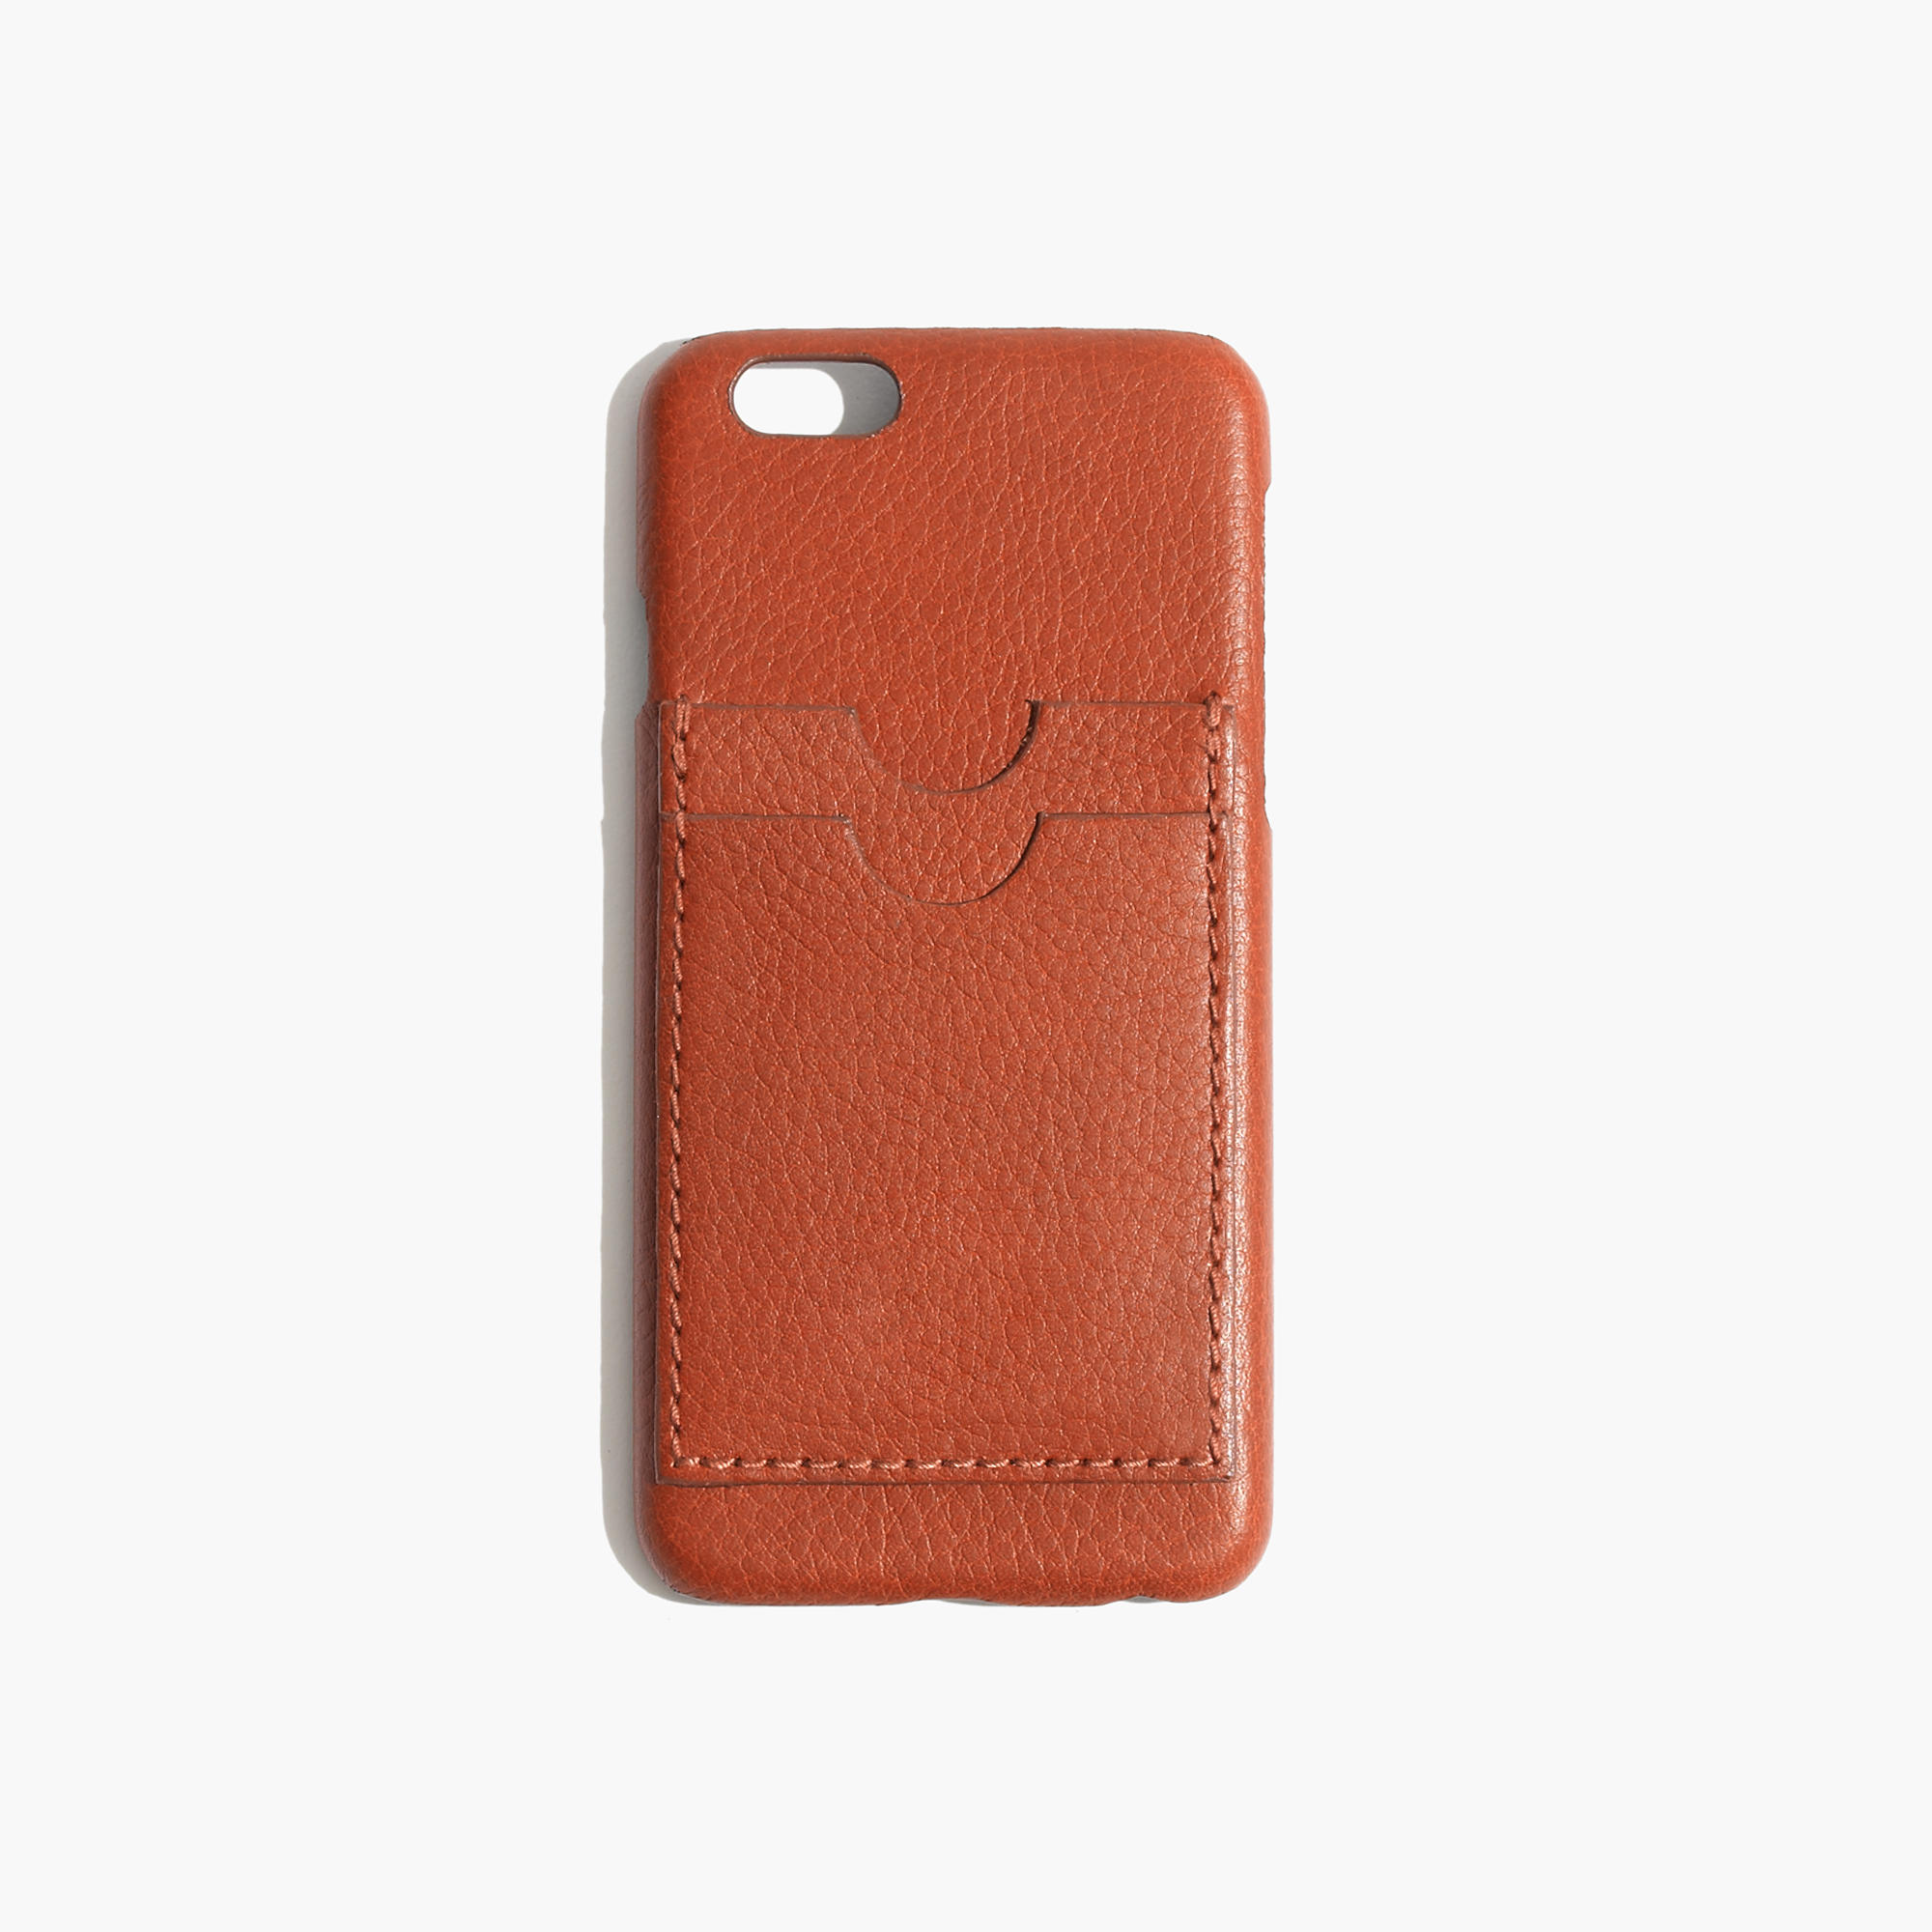 An english saddle Leather Caryall Case for iPhone 6 from Madewell is an example of a perfect valentine's day gift ideas for her.